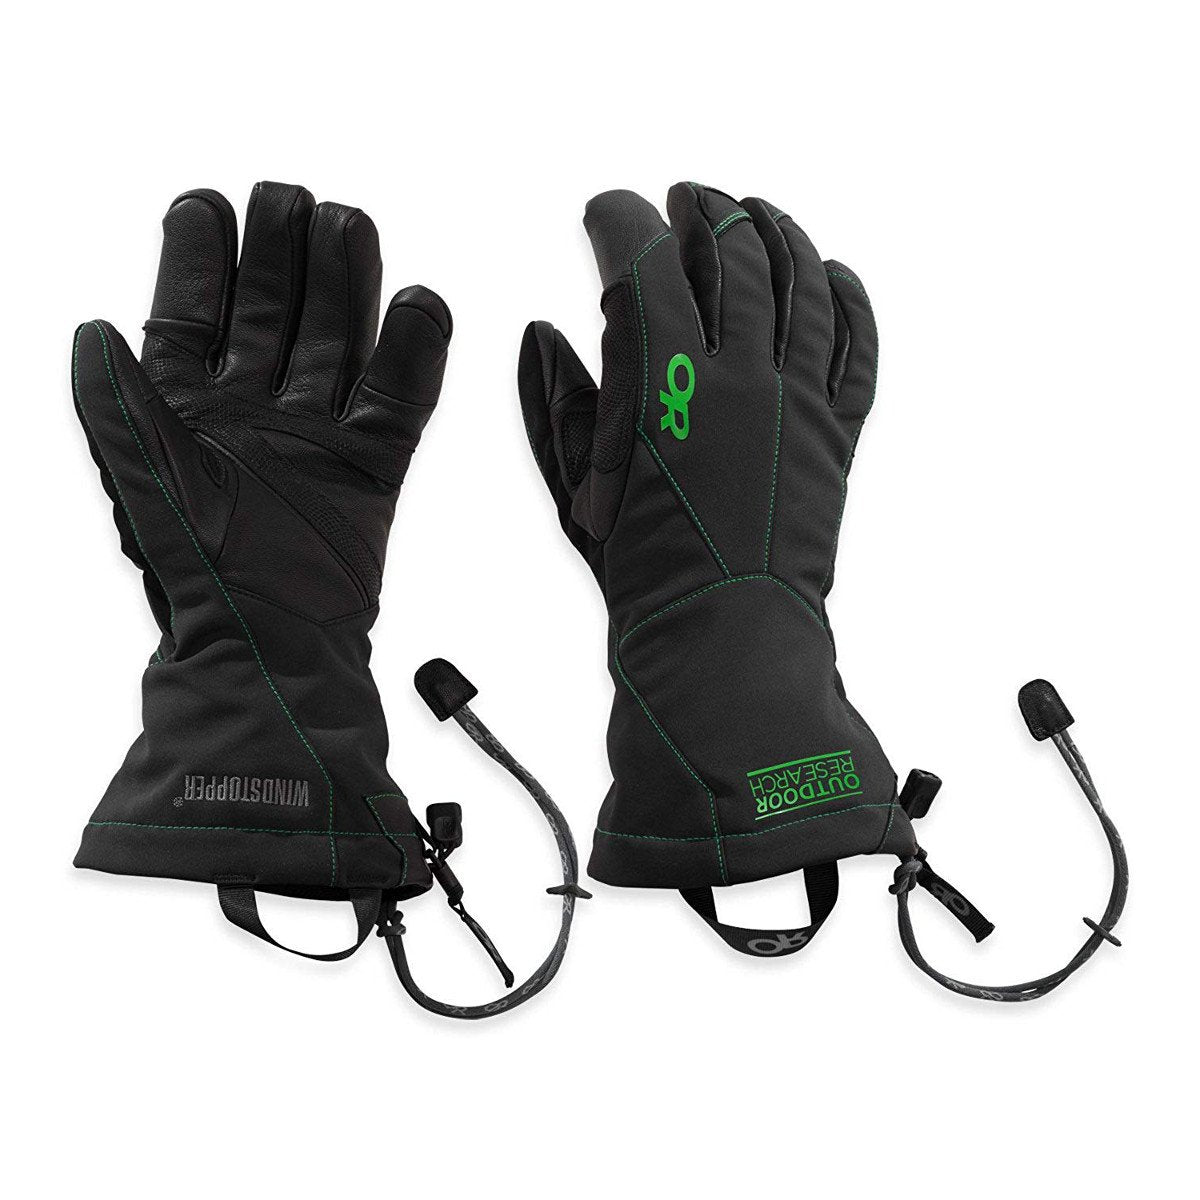 Pair of Outdoor Research Luminary Sensor Gloves in black, showing front and rear